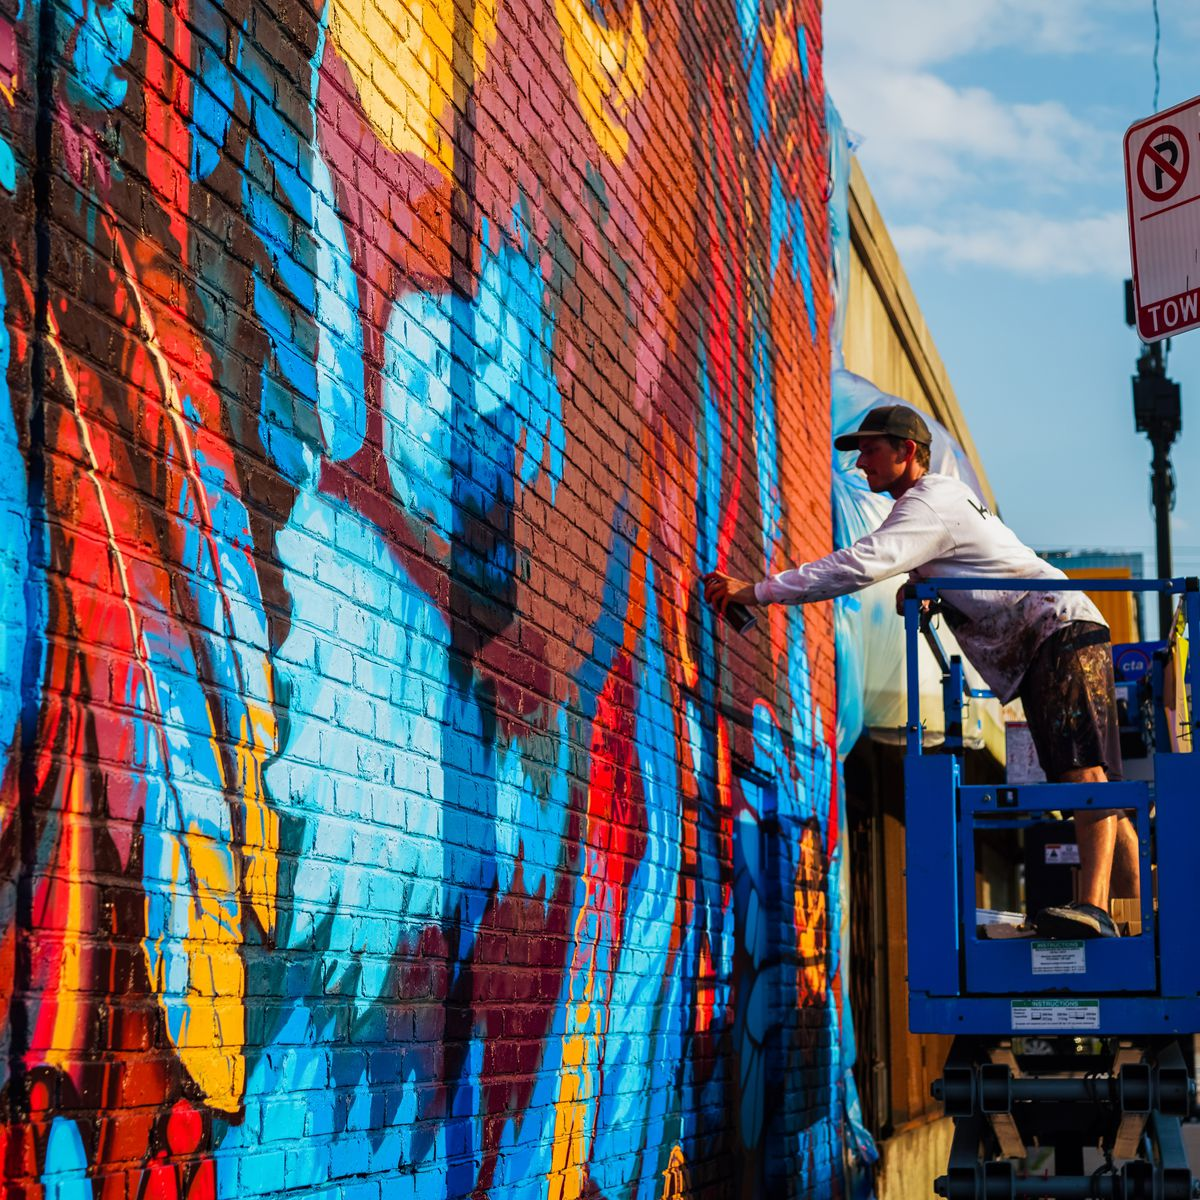 Matt Dean — who works under the name Kiptoe — paints his side of the mural at 488 N. Milwaukee Ave. during the Titan Walls gathering of muralists Aug. 21.